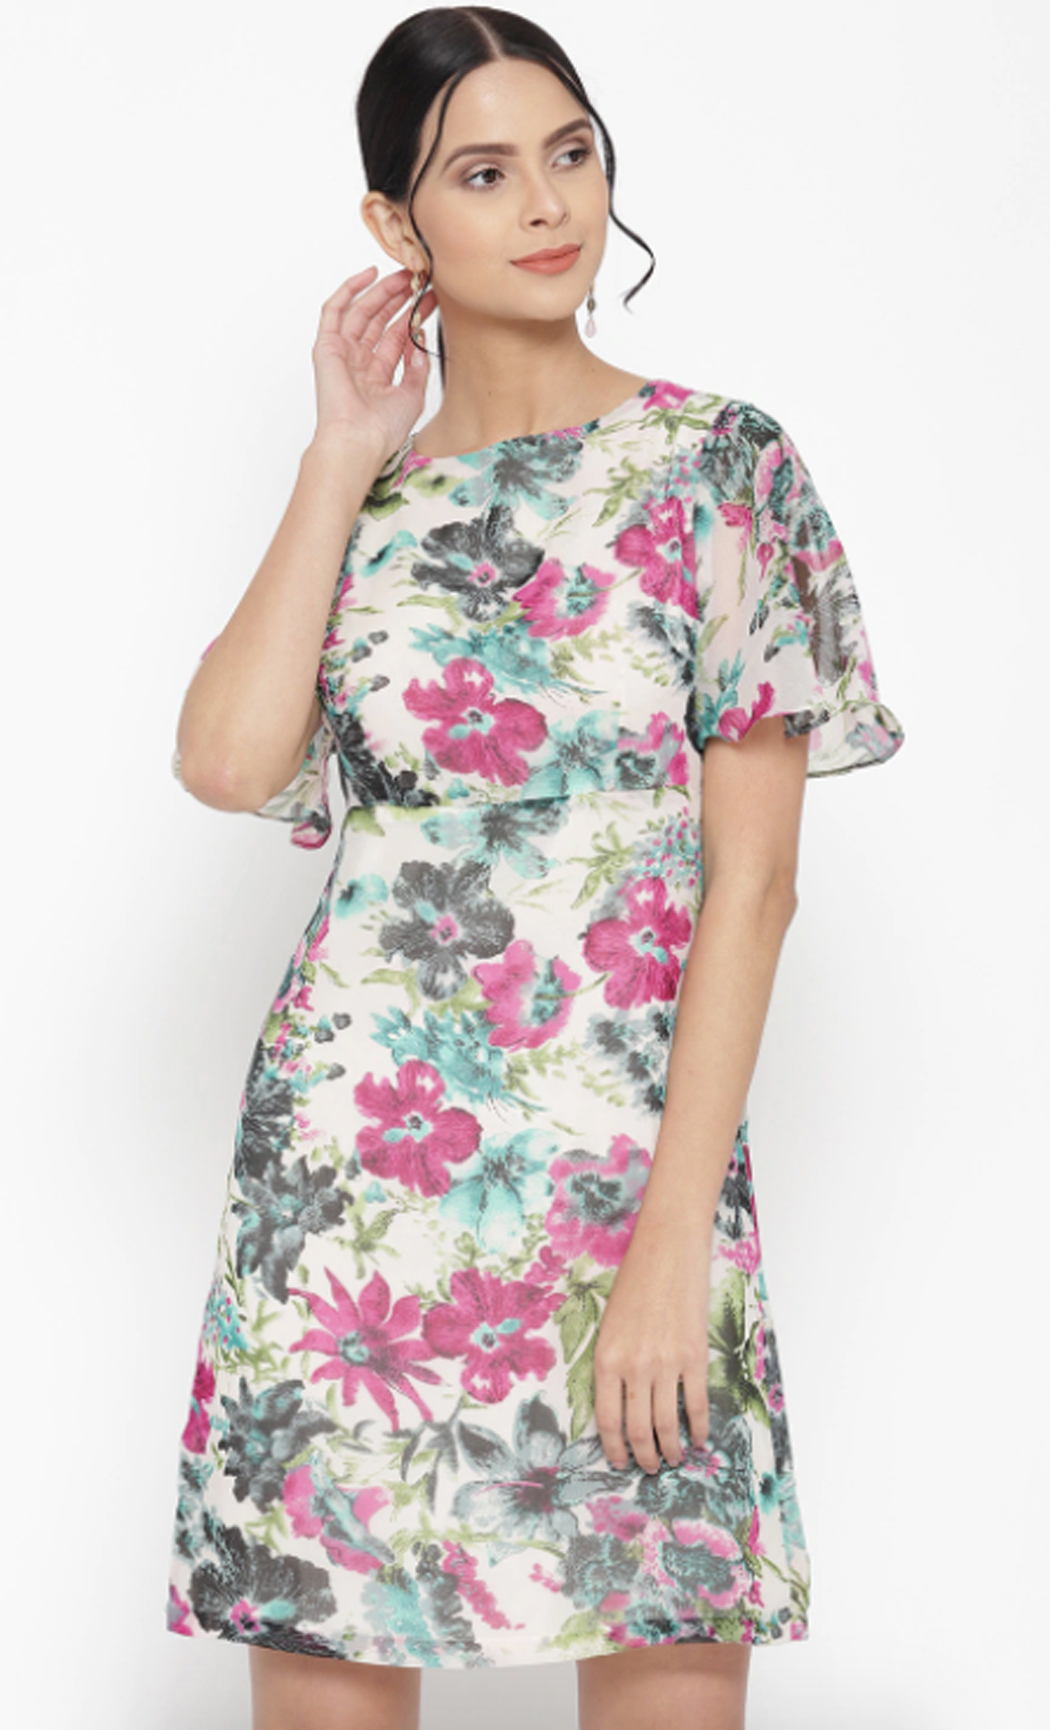 Off-White & Pink Floral Printed A-Line Dress. Buy Online